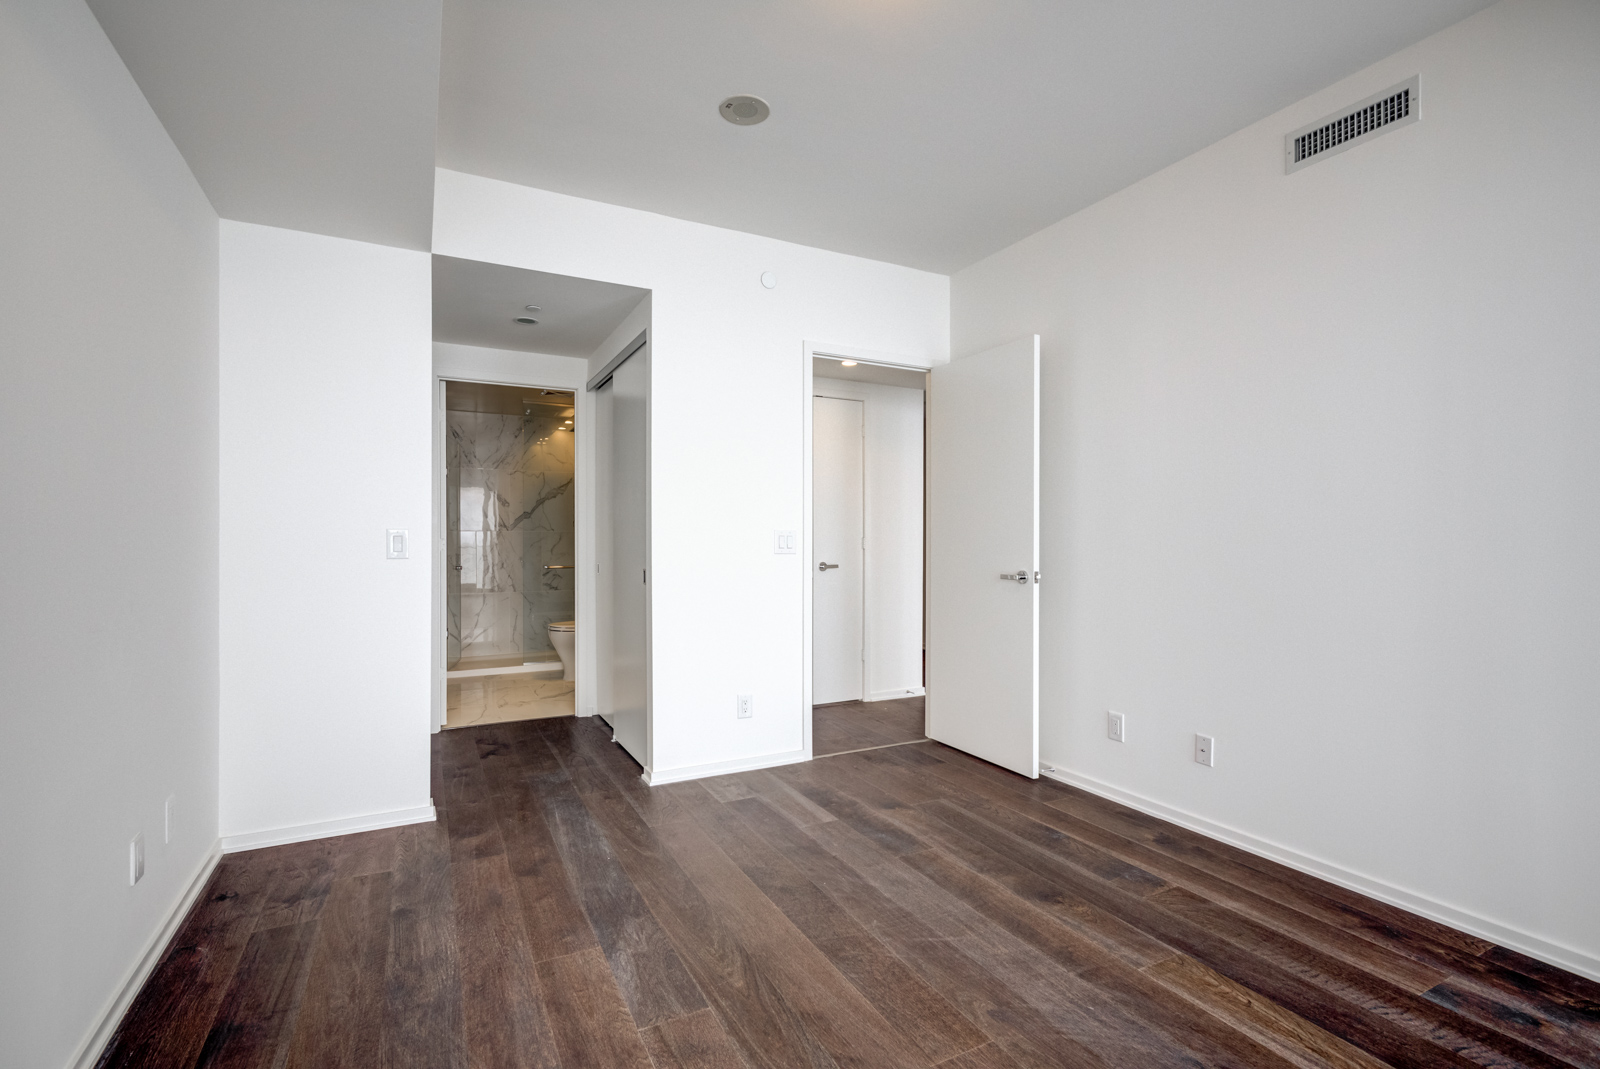 It has the same hardwood floors, huge windows and an ensuite bath.